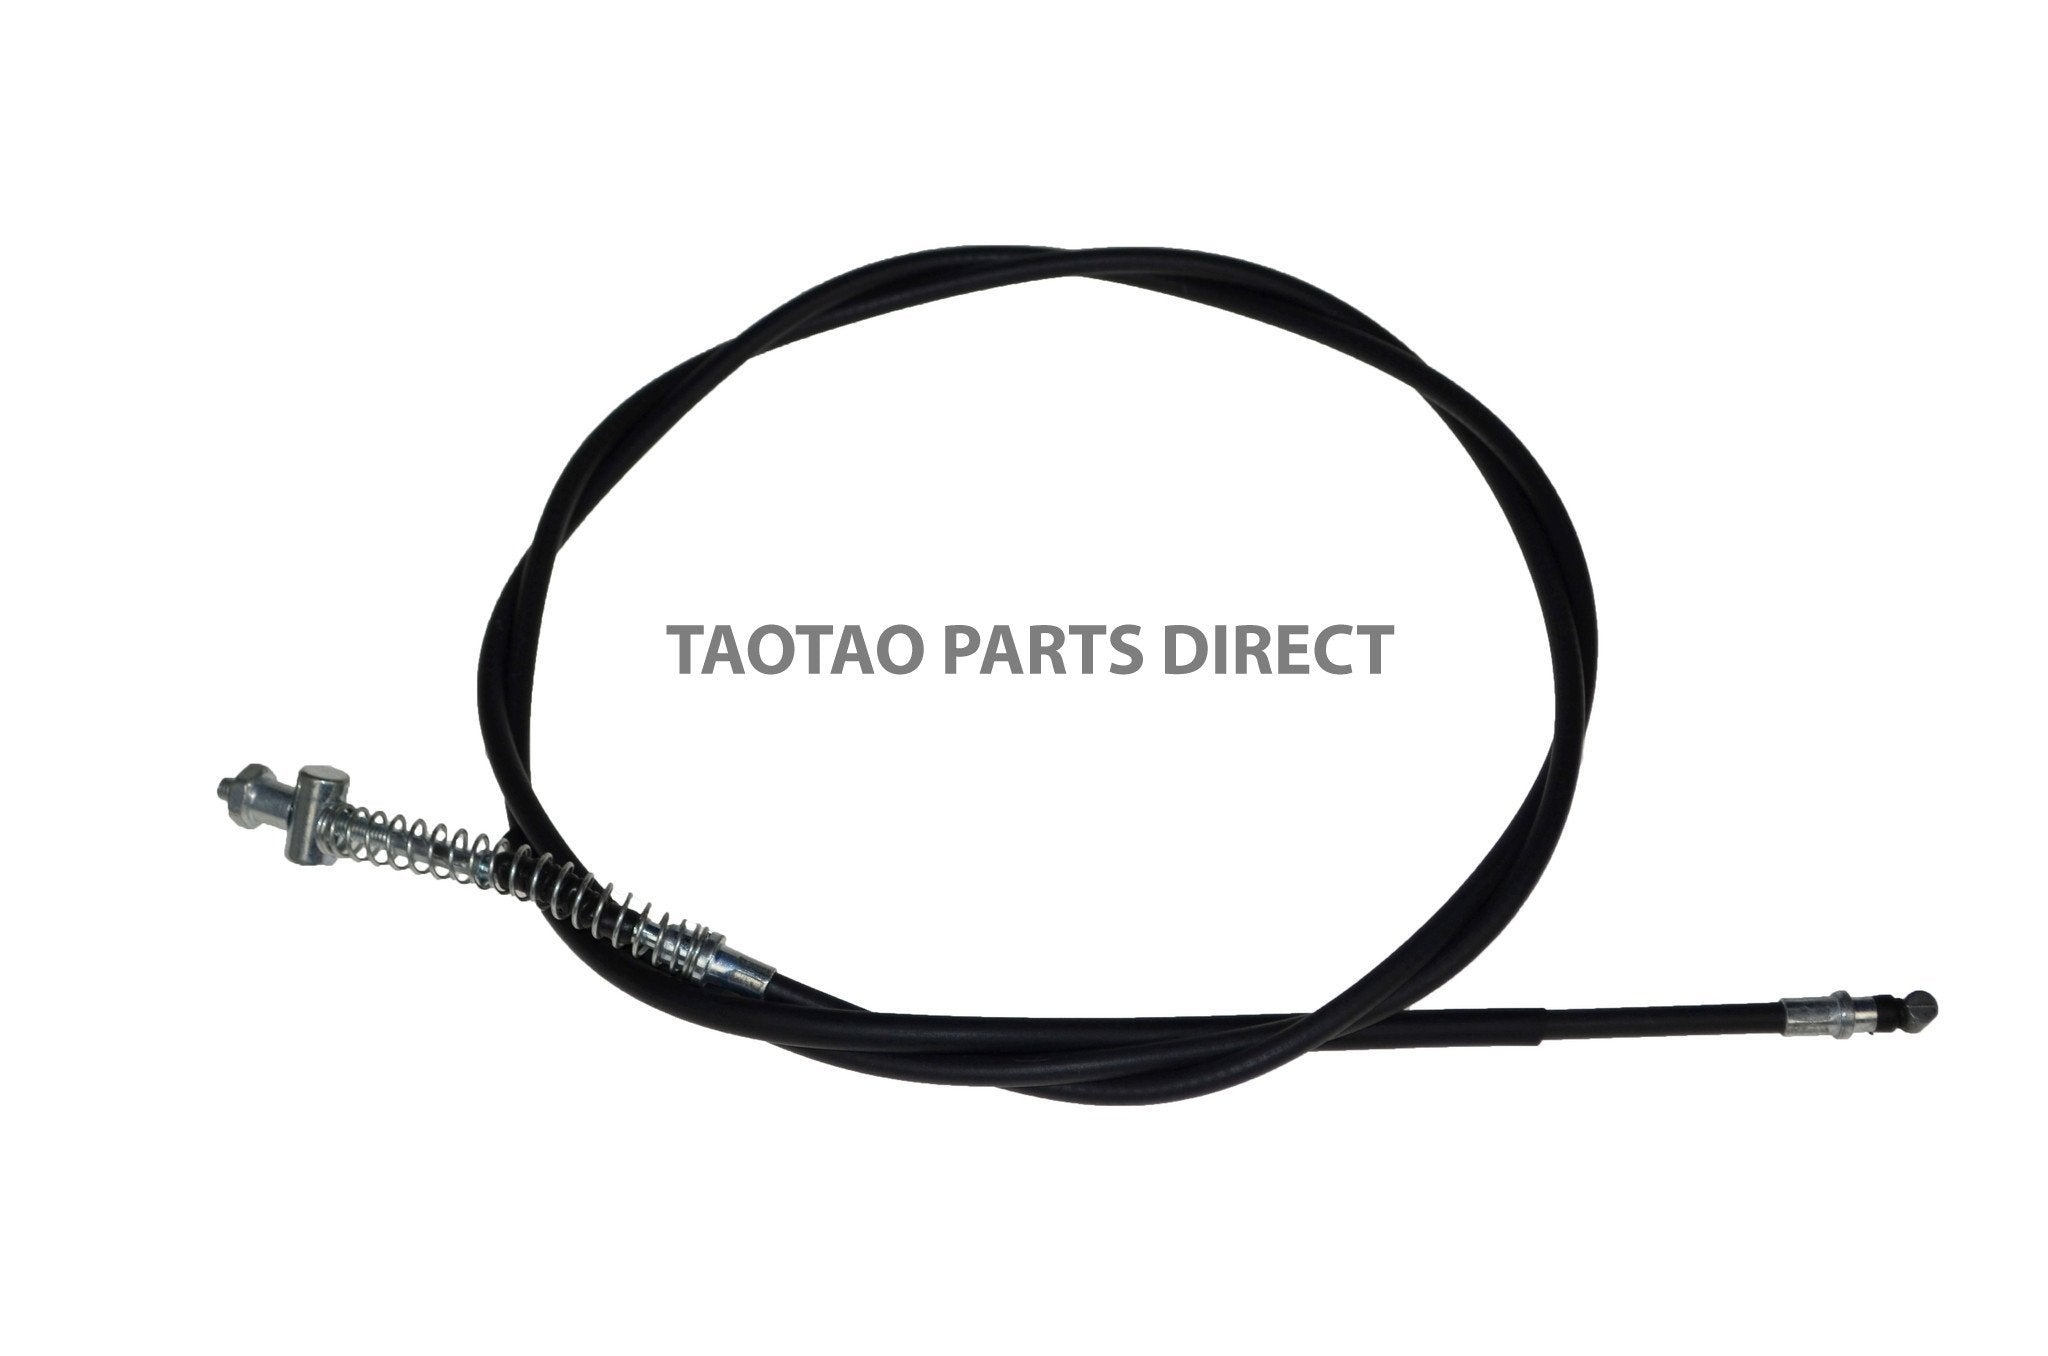 Evo 150 Rear Brake Cable - TaoTaoPartsDirect.com